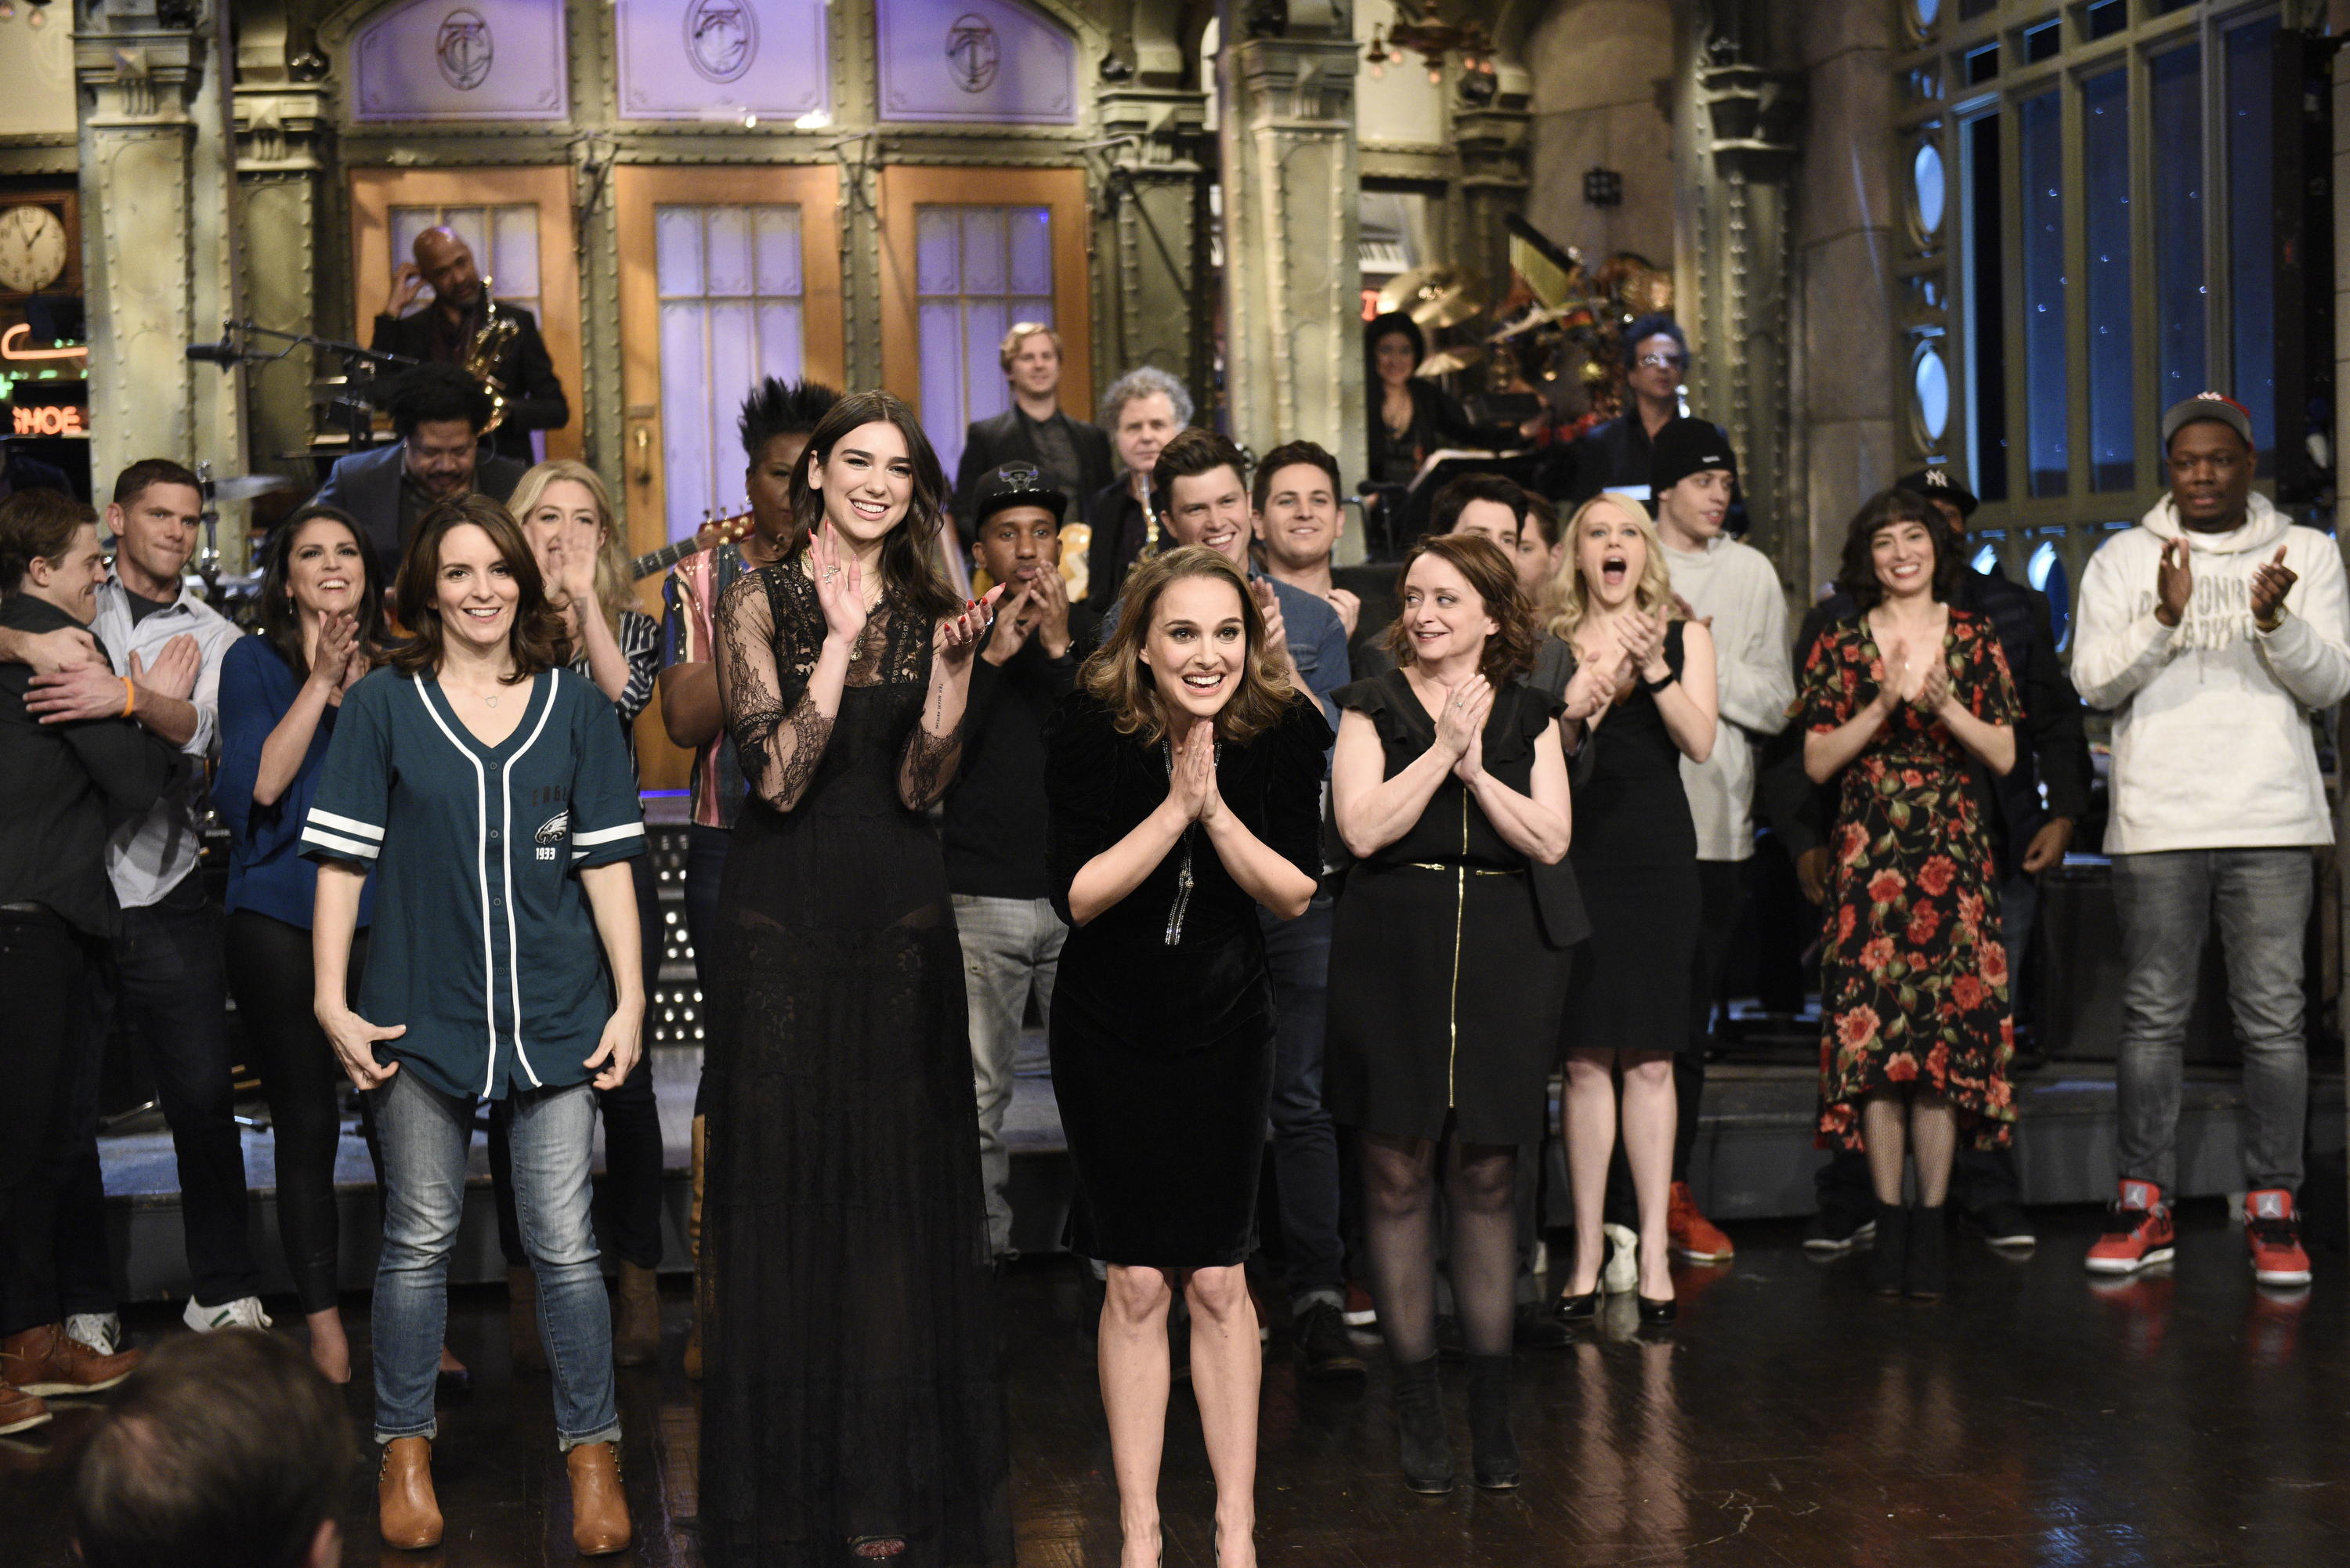 SATURDAY NIGHT LIVE -- Episode 1738  Natalie Portman  -- Pictured: (l-r) Alex Moffat, Mikey Day, Cecily Strong, Tina Fey, Dua Lipa, Chris Redd, Natalie Portman, Colin Jost, Luke Null, Rachel Dratch, Kate McKinnon, Pete Davidson, Melissa Villaseñor, Michael Che during  Goodnights & Credits  in Studio 8H on Saturday, February 3, 2018 -- (Photo by: Will Heath/NBC)